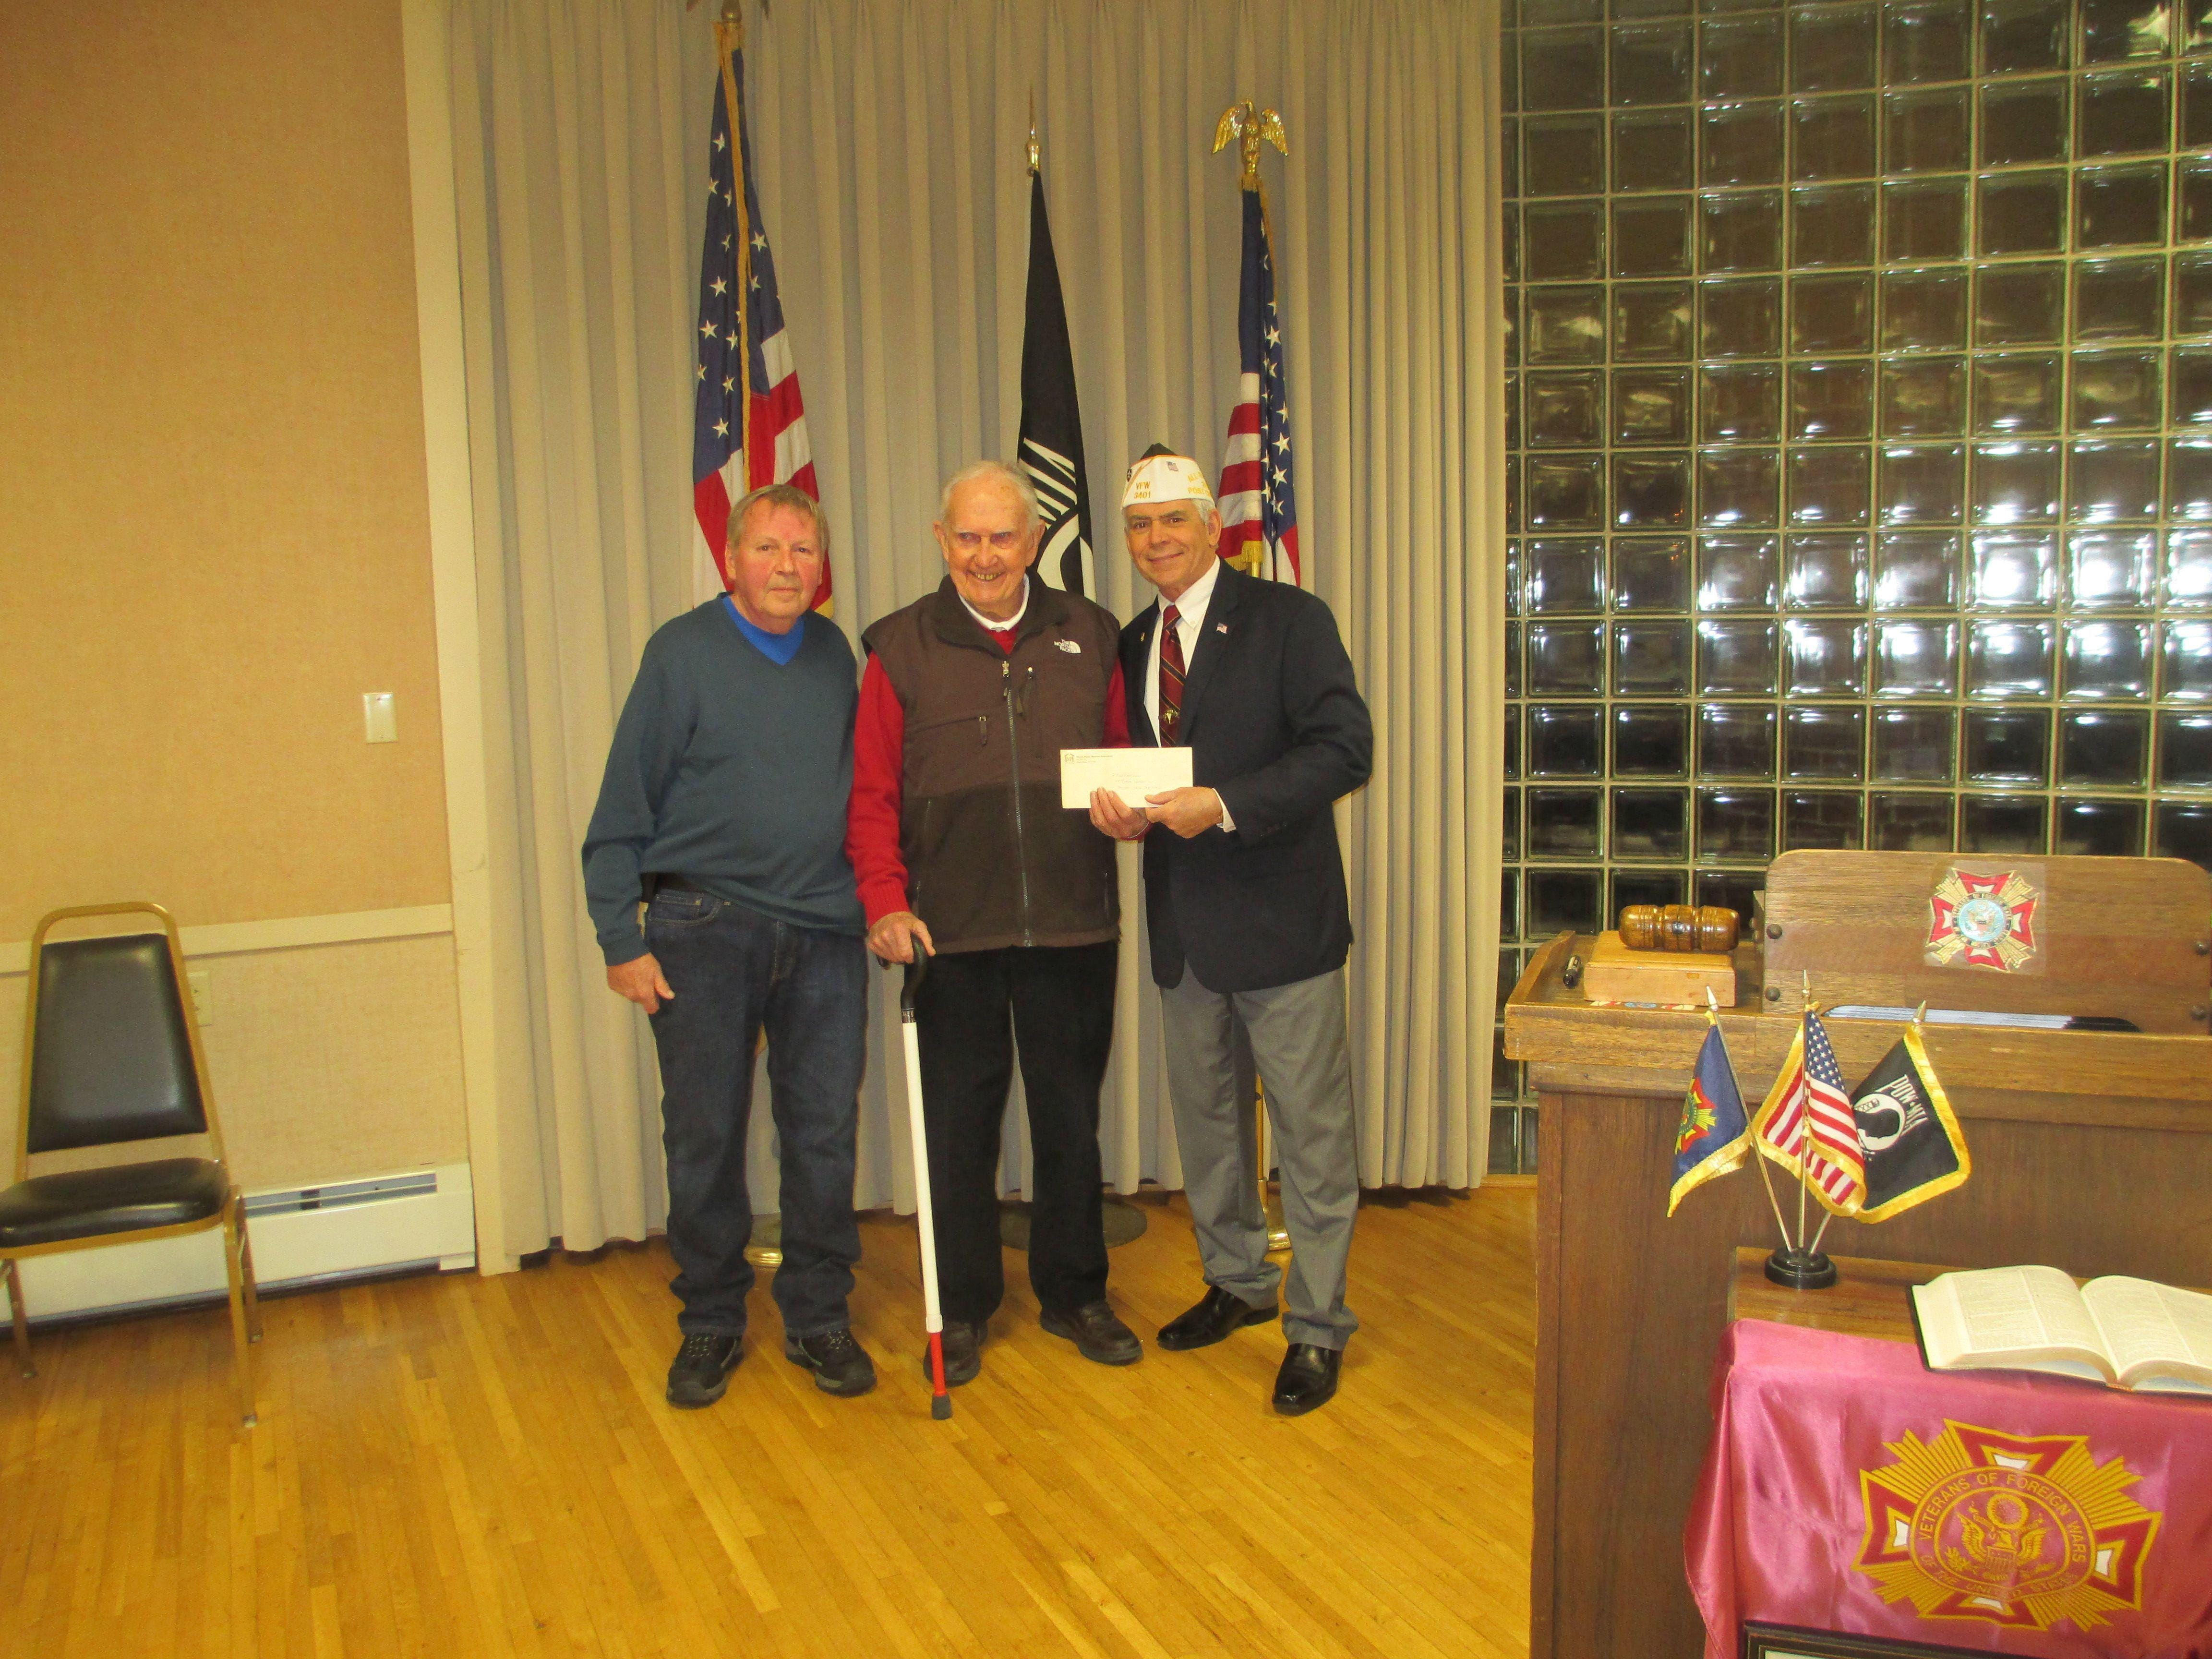 VFW Post Morris Plains receives a donation from Morris Plains Museum